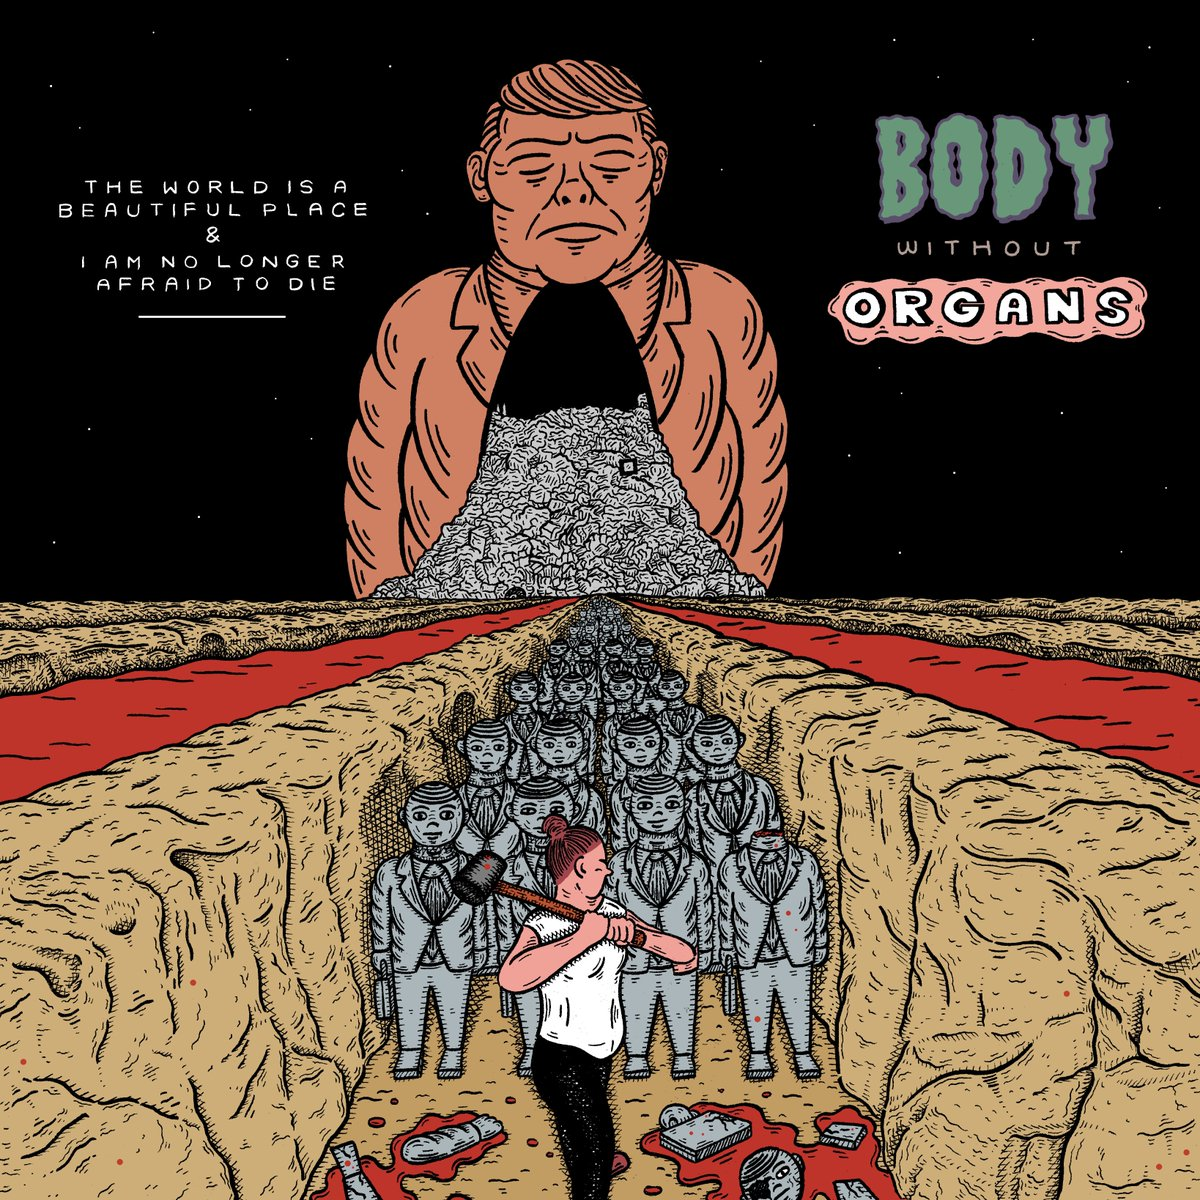 """The World is a Beautiful Place & I am No Longer Afraid to Die share unreleased track """"Body Without Organs"""", all song proceeds going to the ACLU"""